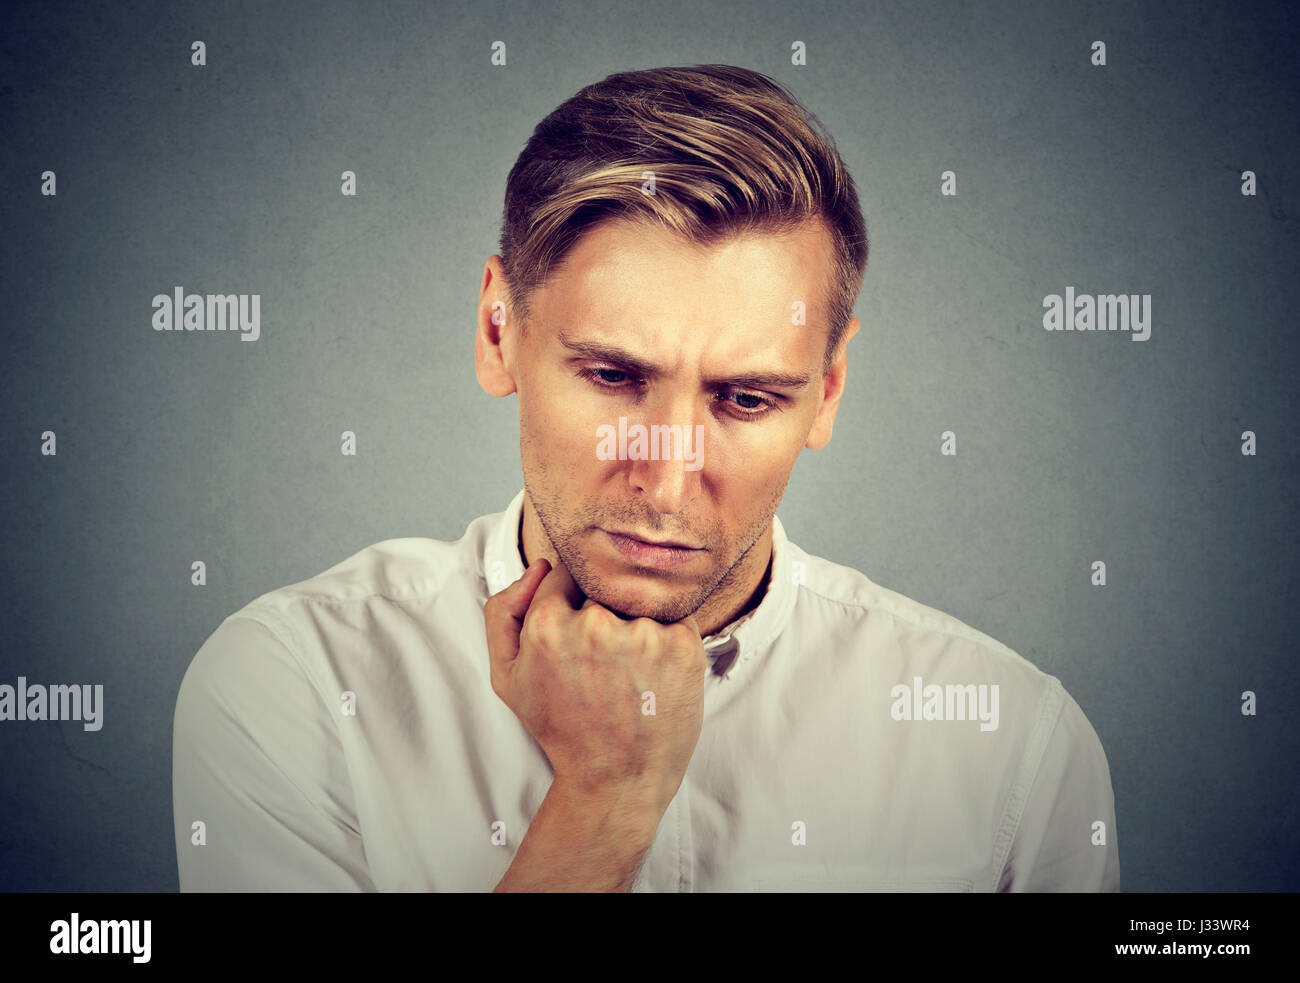 Closeup portrait sad young handsome man with worried stressed face expression looking down - Stock Image